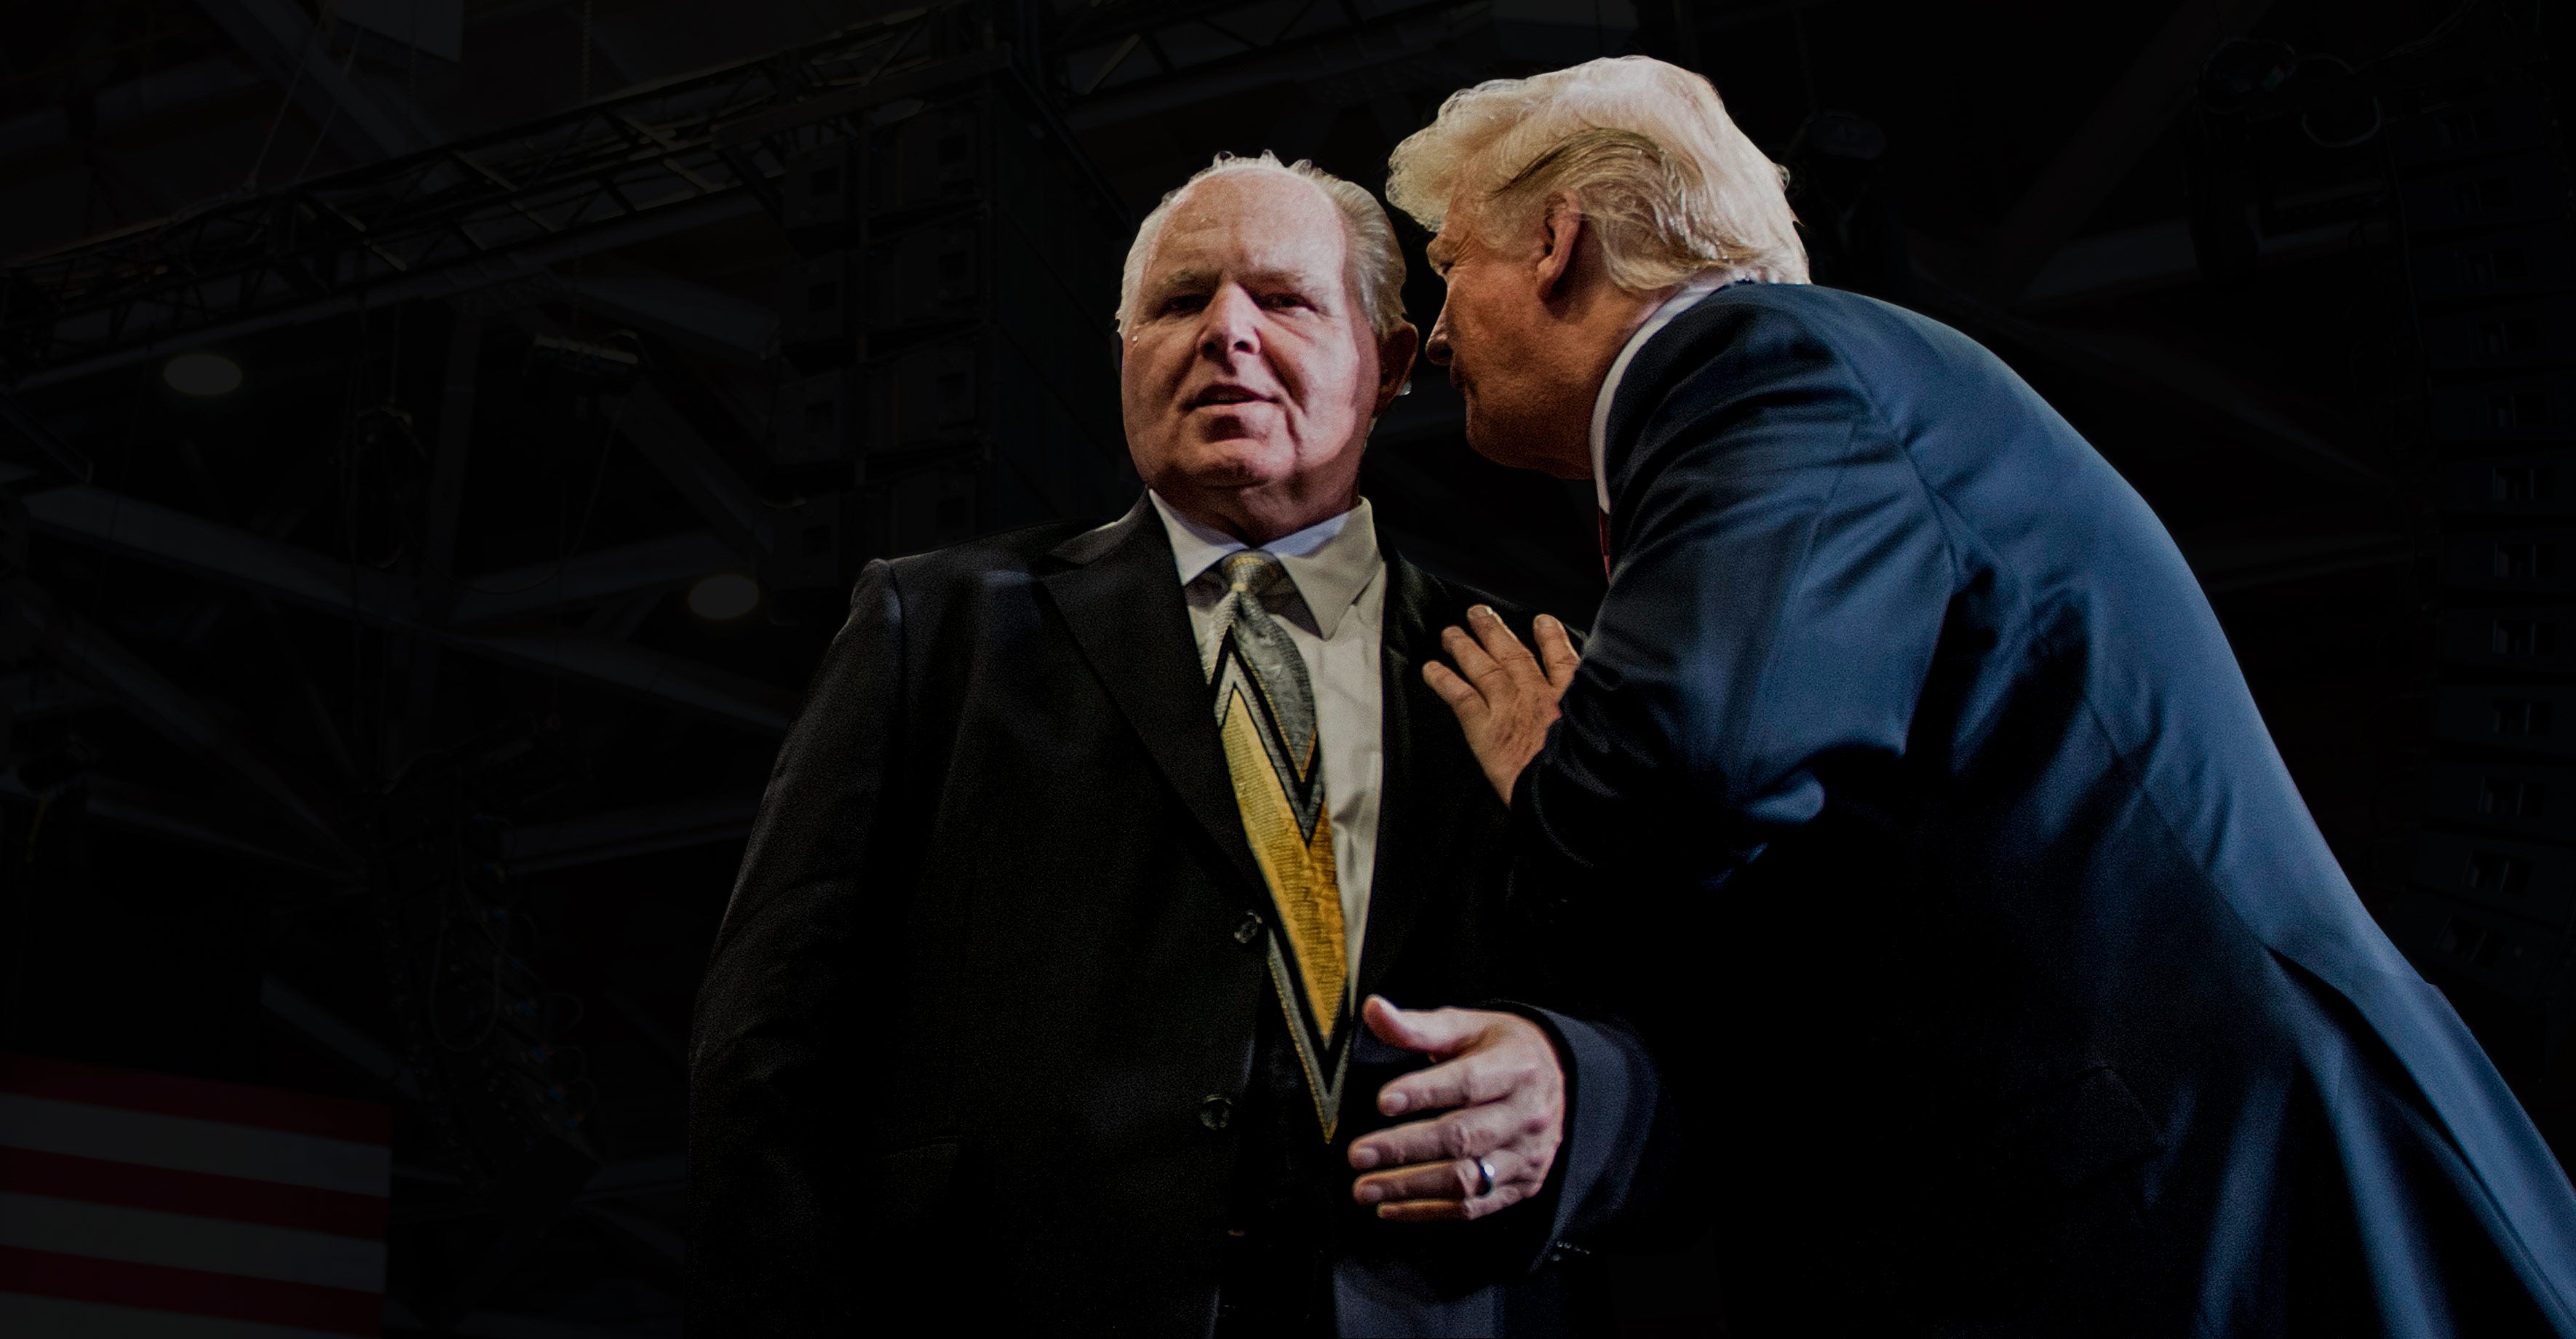 Donald Trump whispers in Rush Limbaugh's ear.